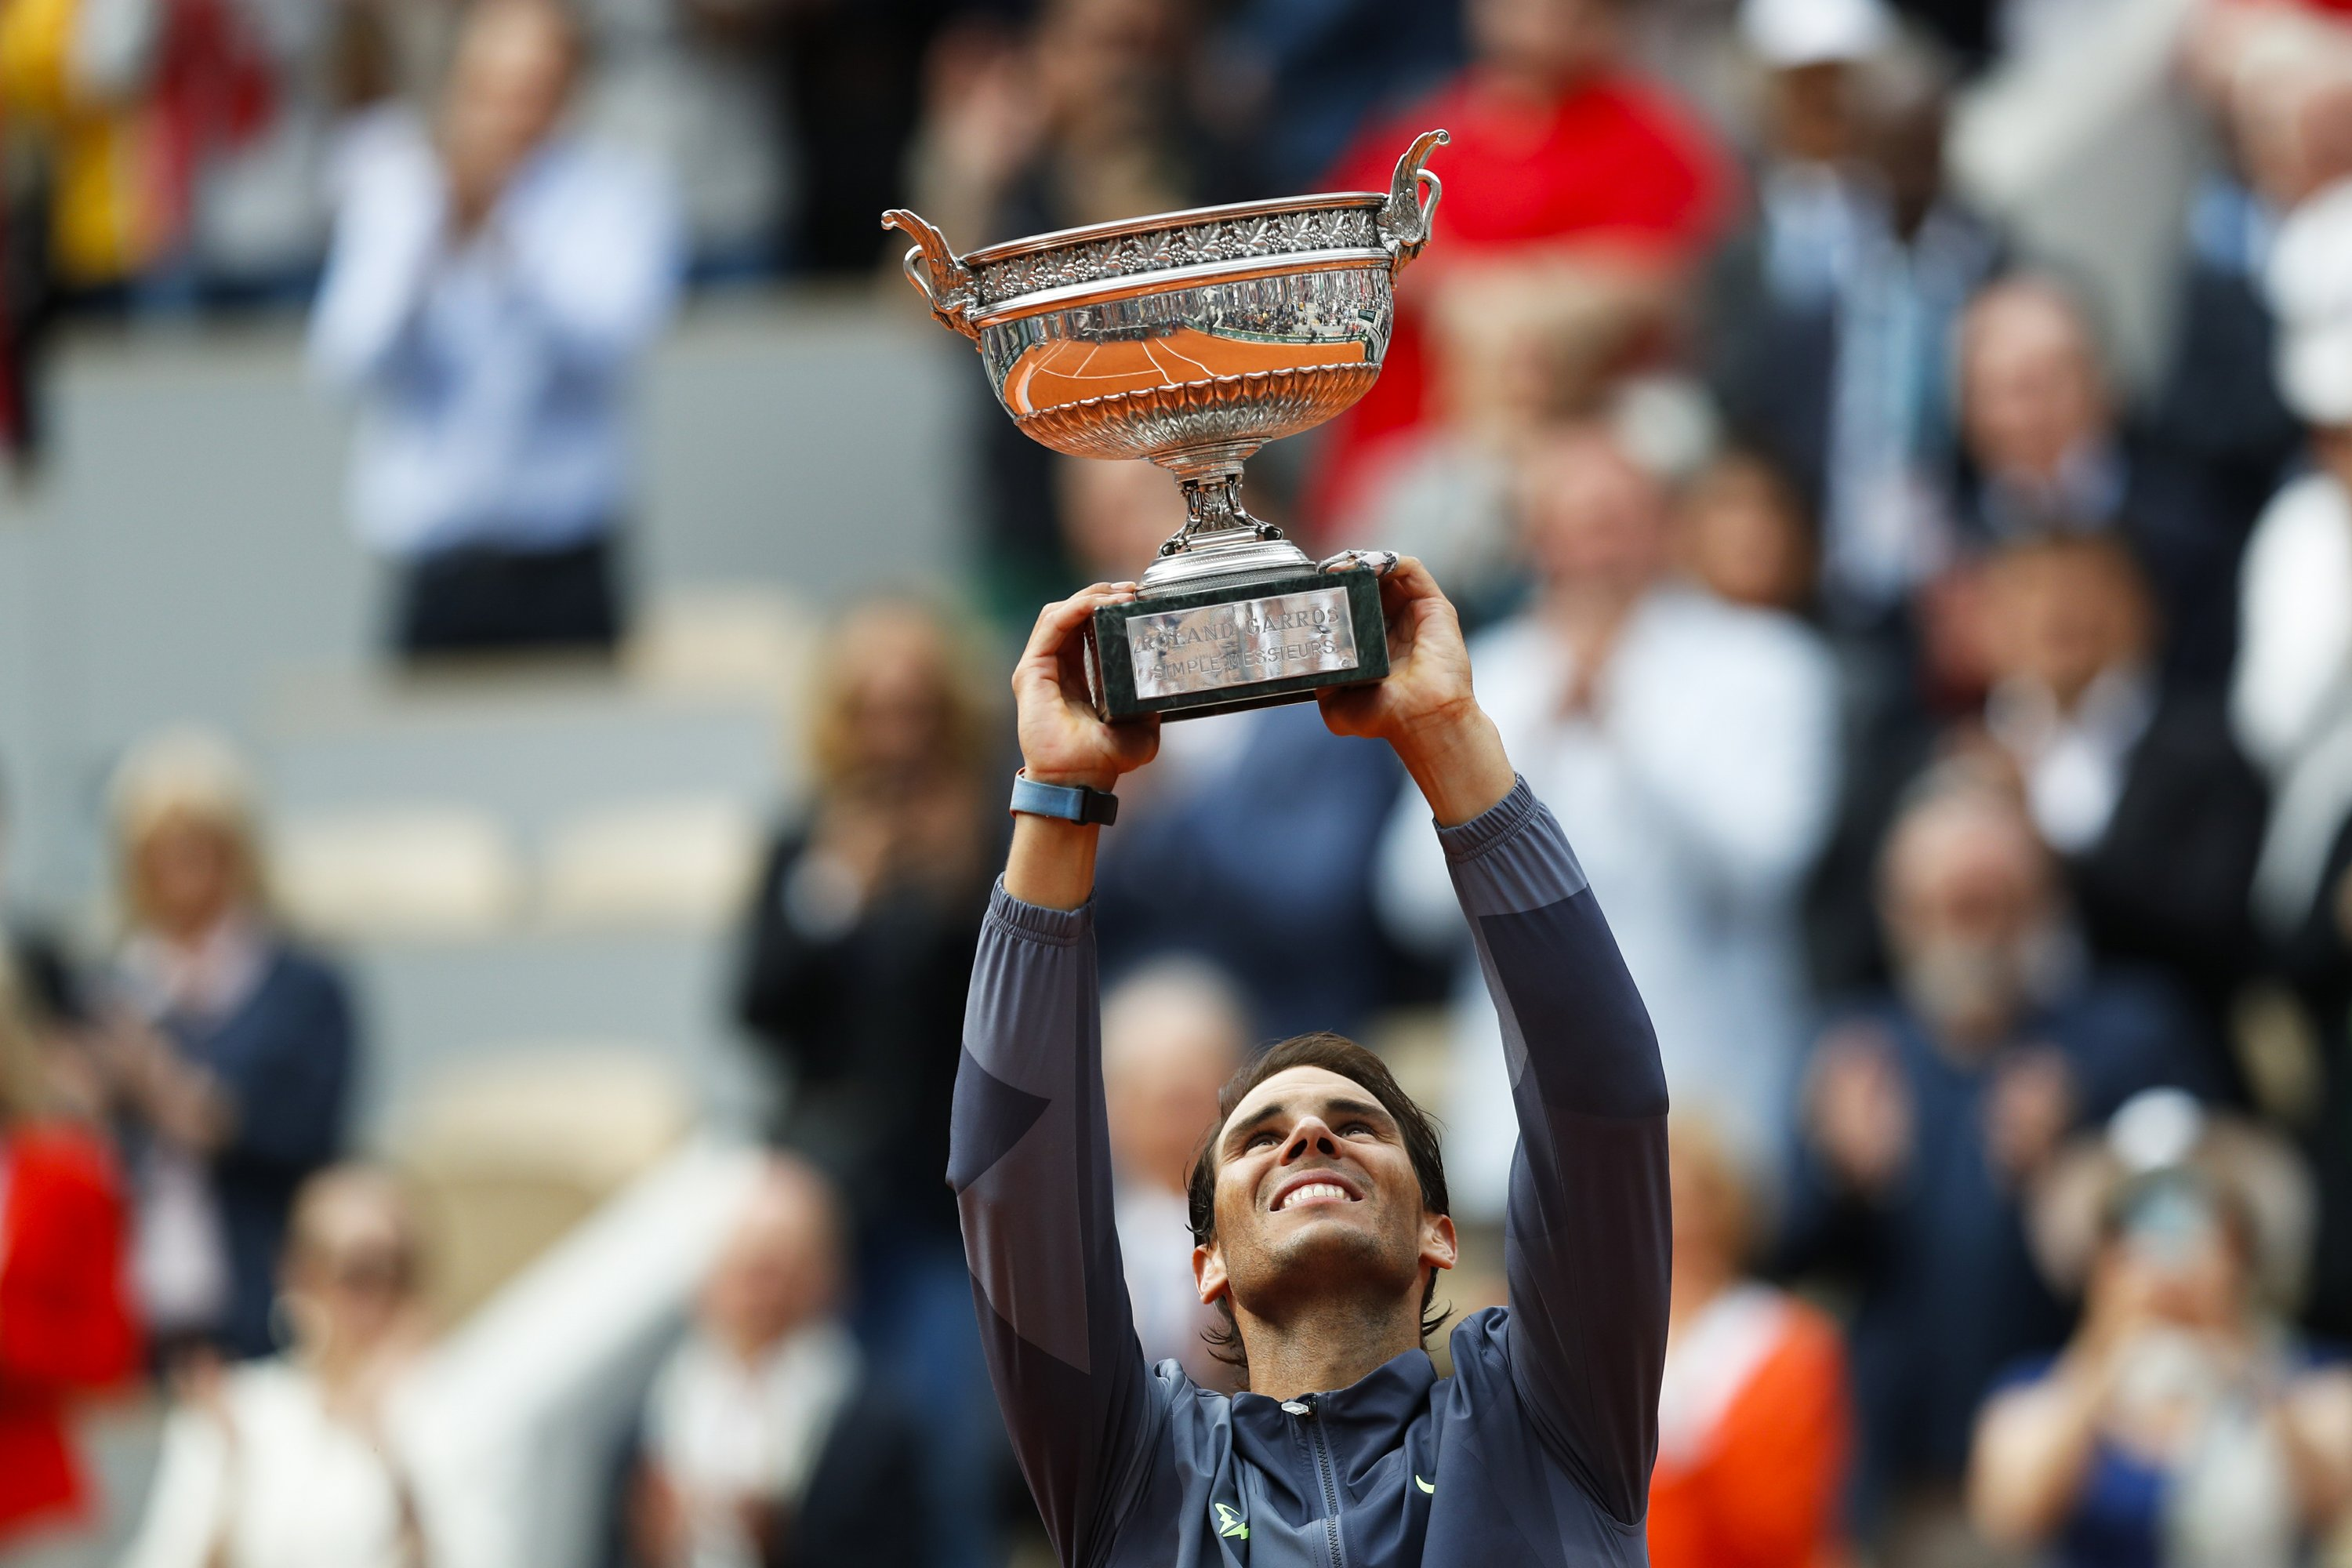 Analysis Nadal And Everyone Else Should Stop Doubting Him